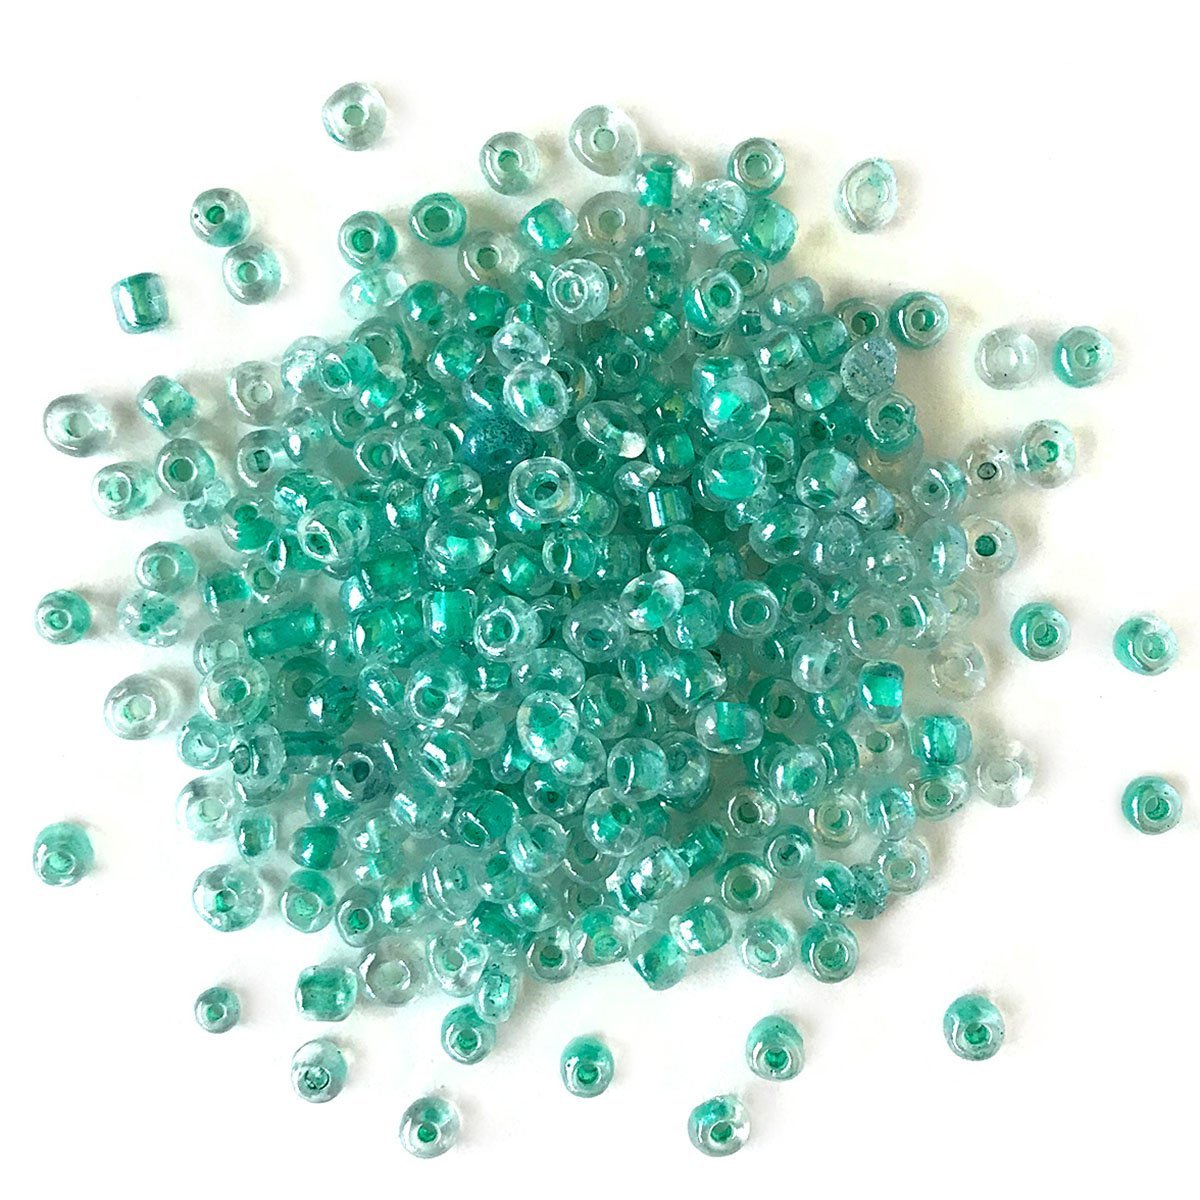 Pacific Opal Seed Beads - 6/0